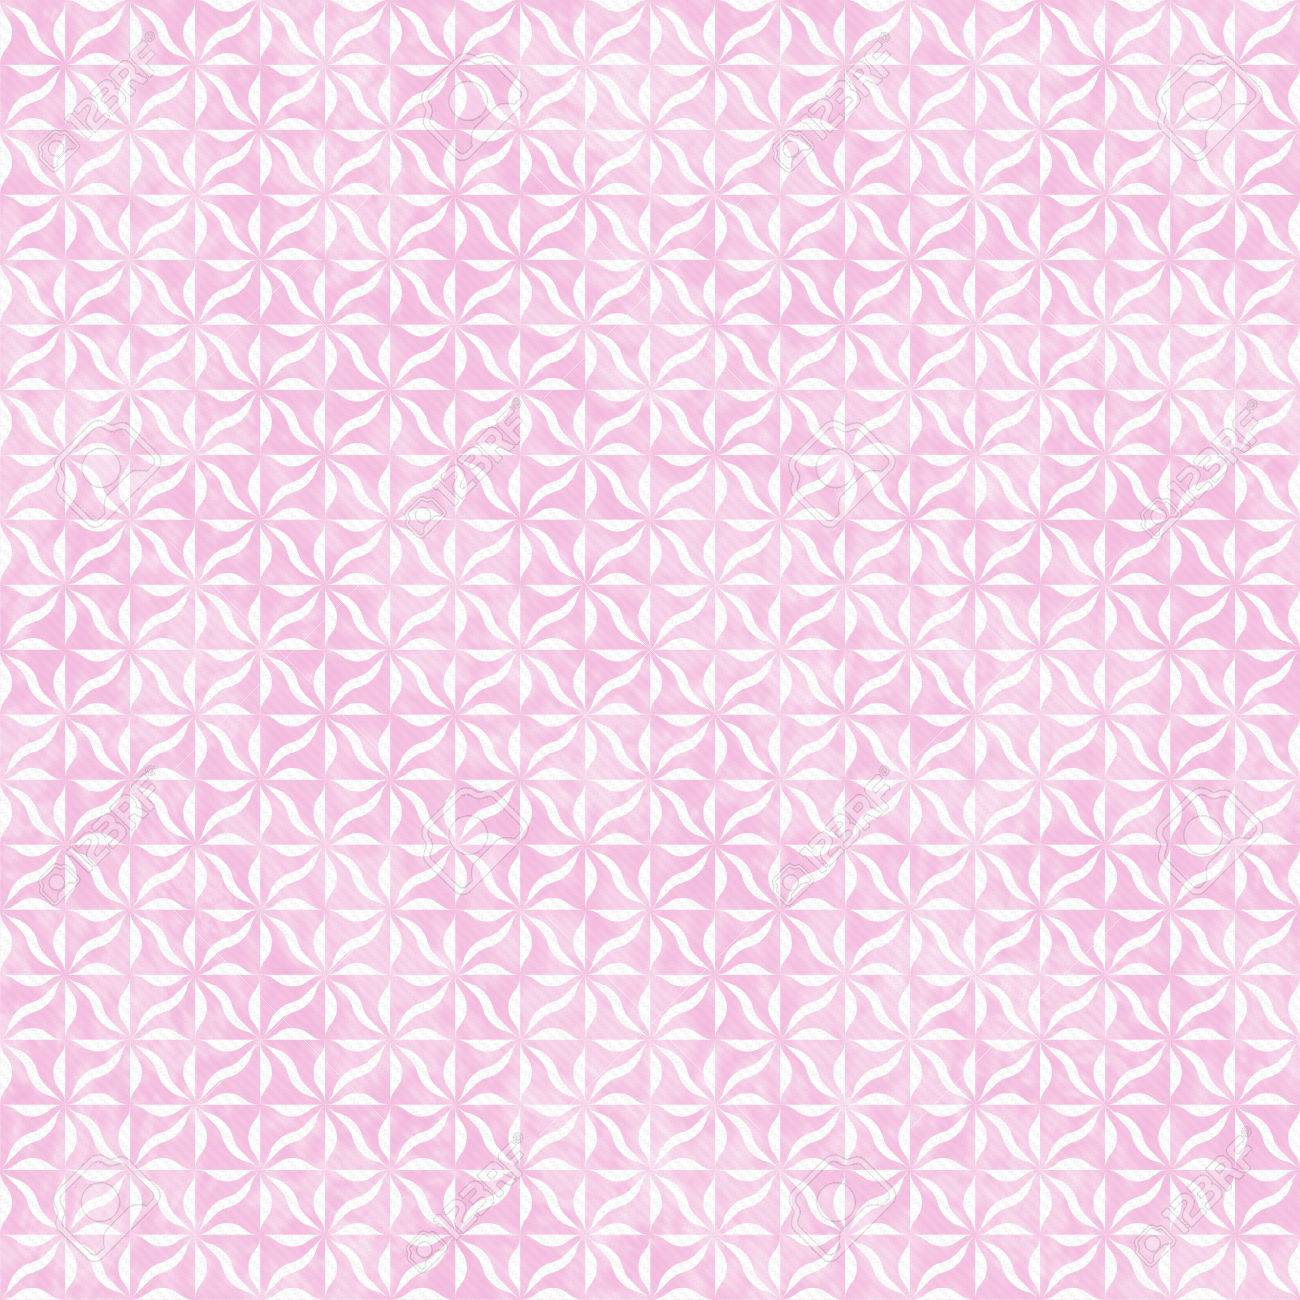 pink and white decorative swirl design textured fabric background